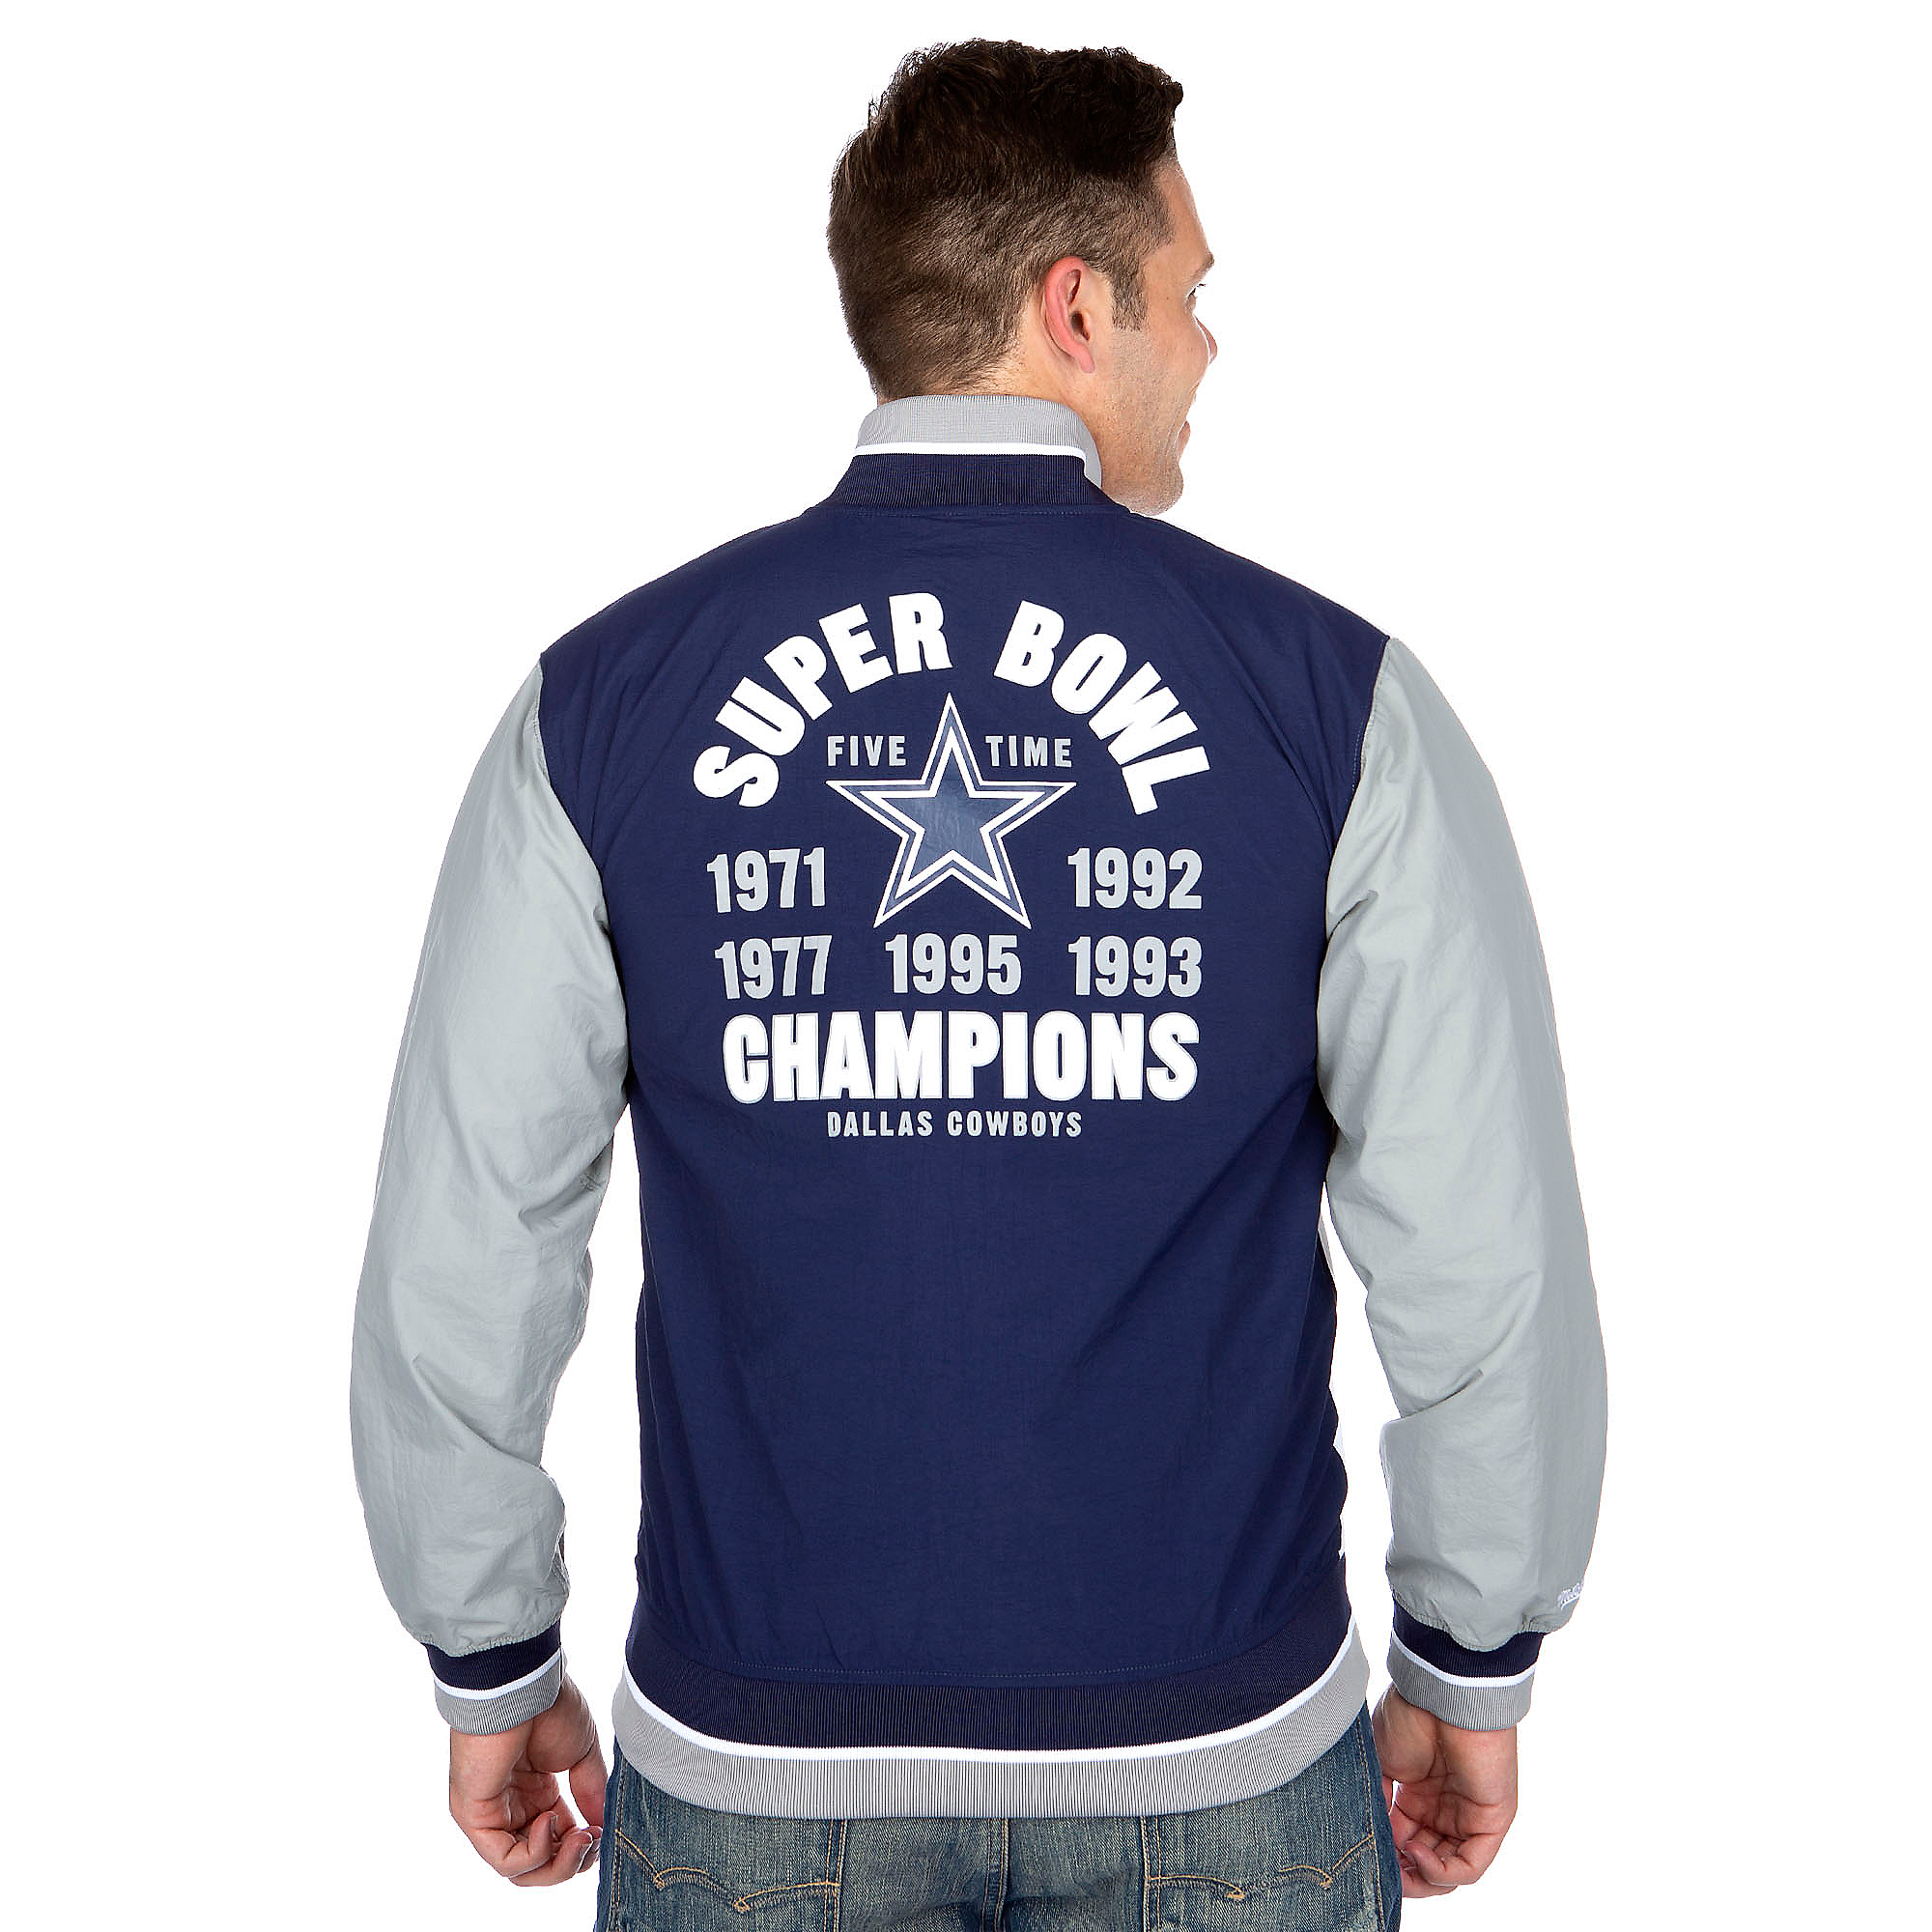 brand new 7a97e 2a5d2 Dallas Cowboys Mitchell & Ness Team History Warm Up Jacket | Dallas Cowboys  Pro Shop